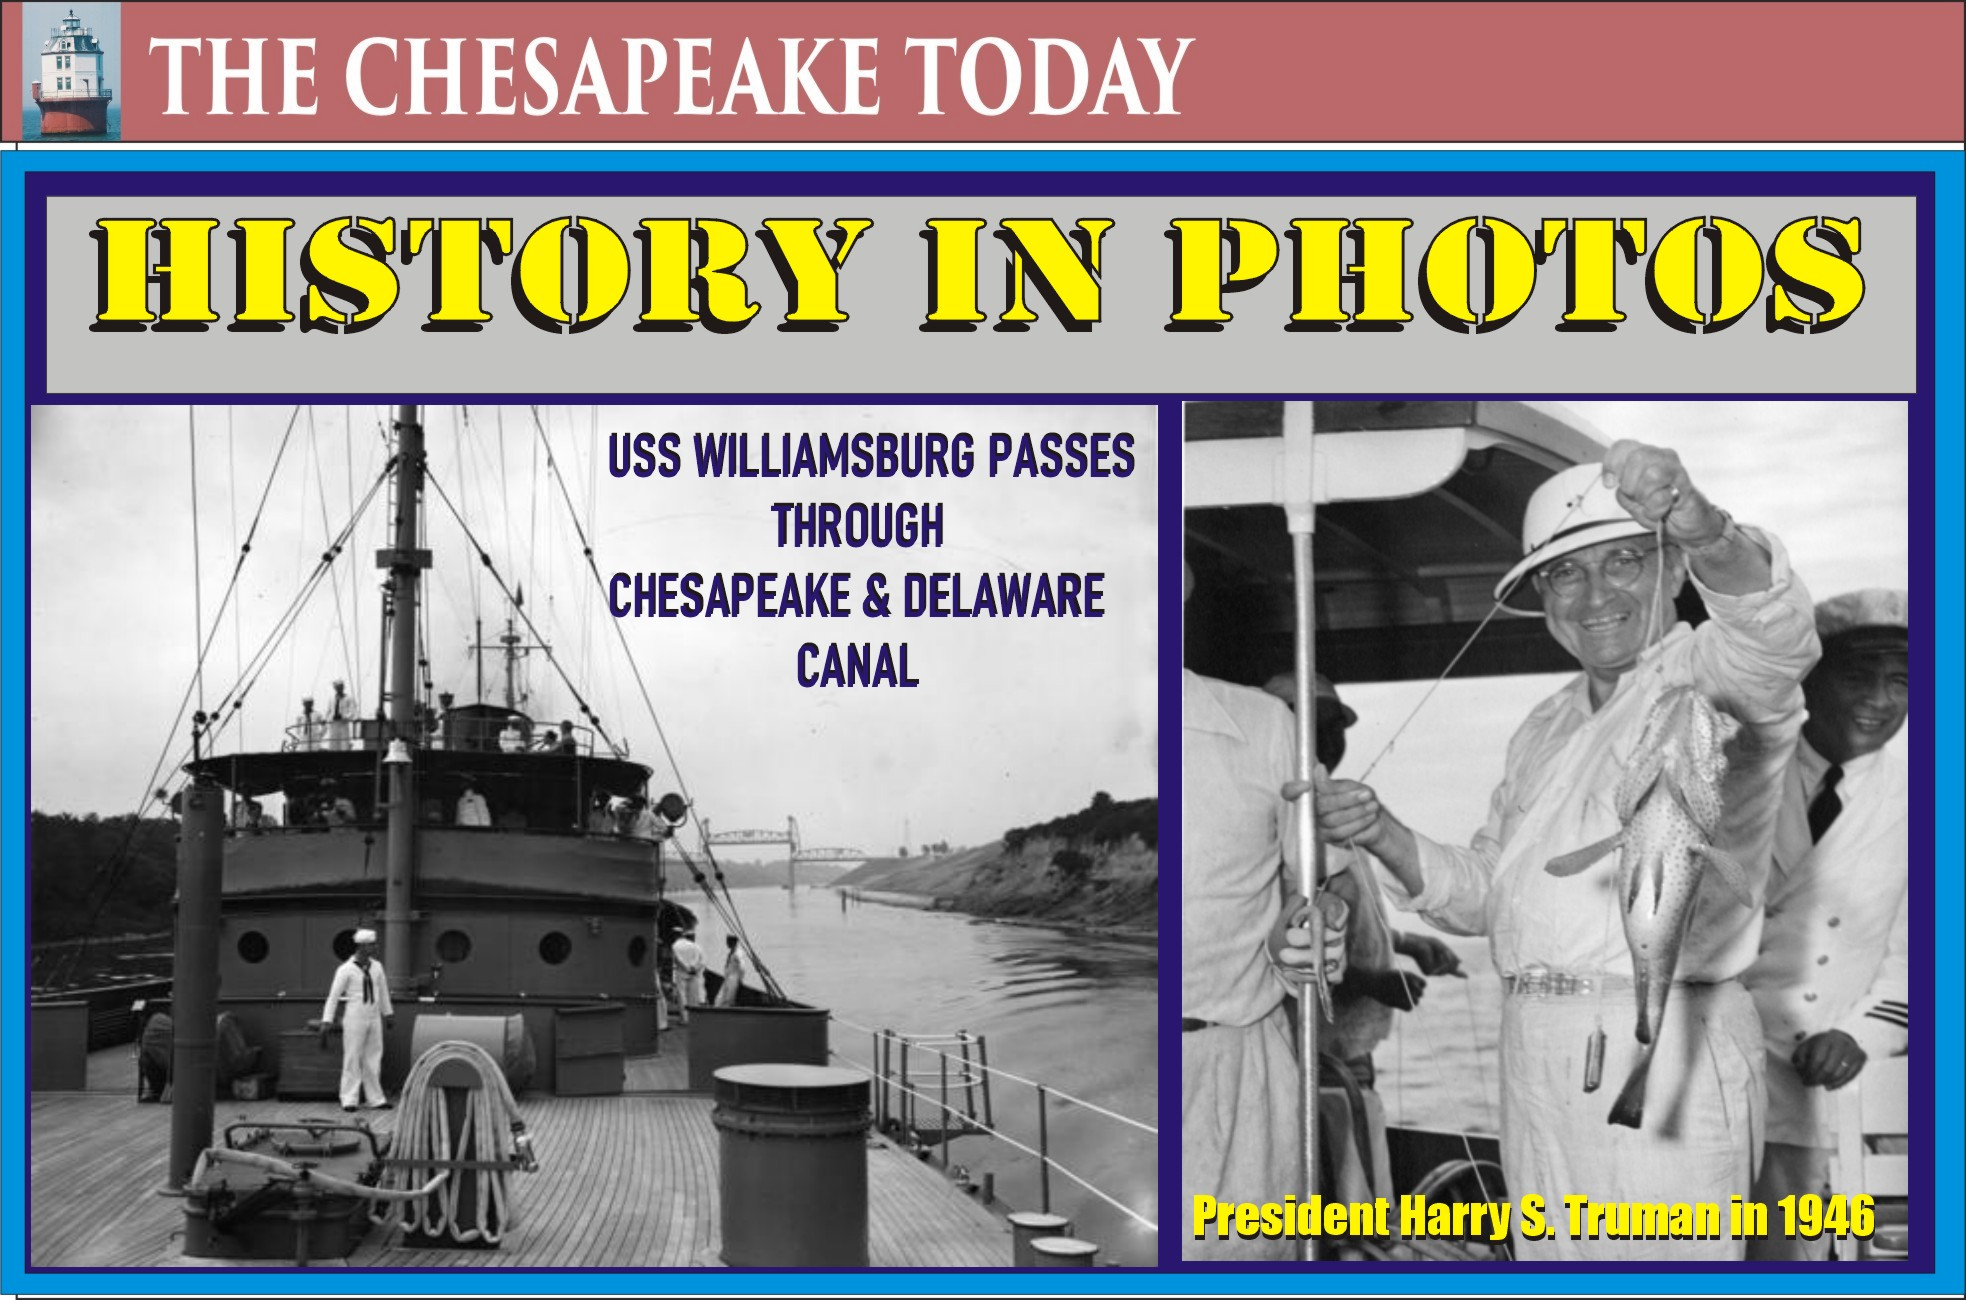 History in Photos: Presidential travel at sea; Harry S. Truman vacation to Bermuda from Washington, D.C.